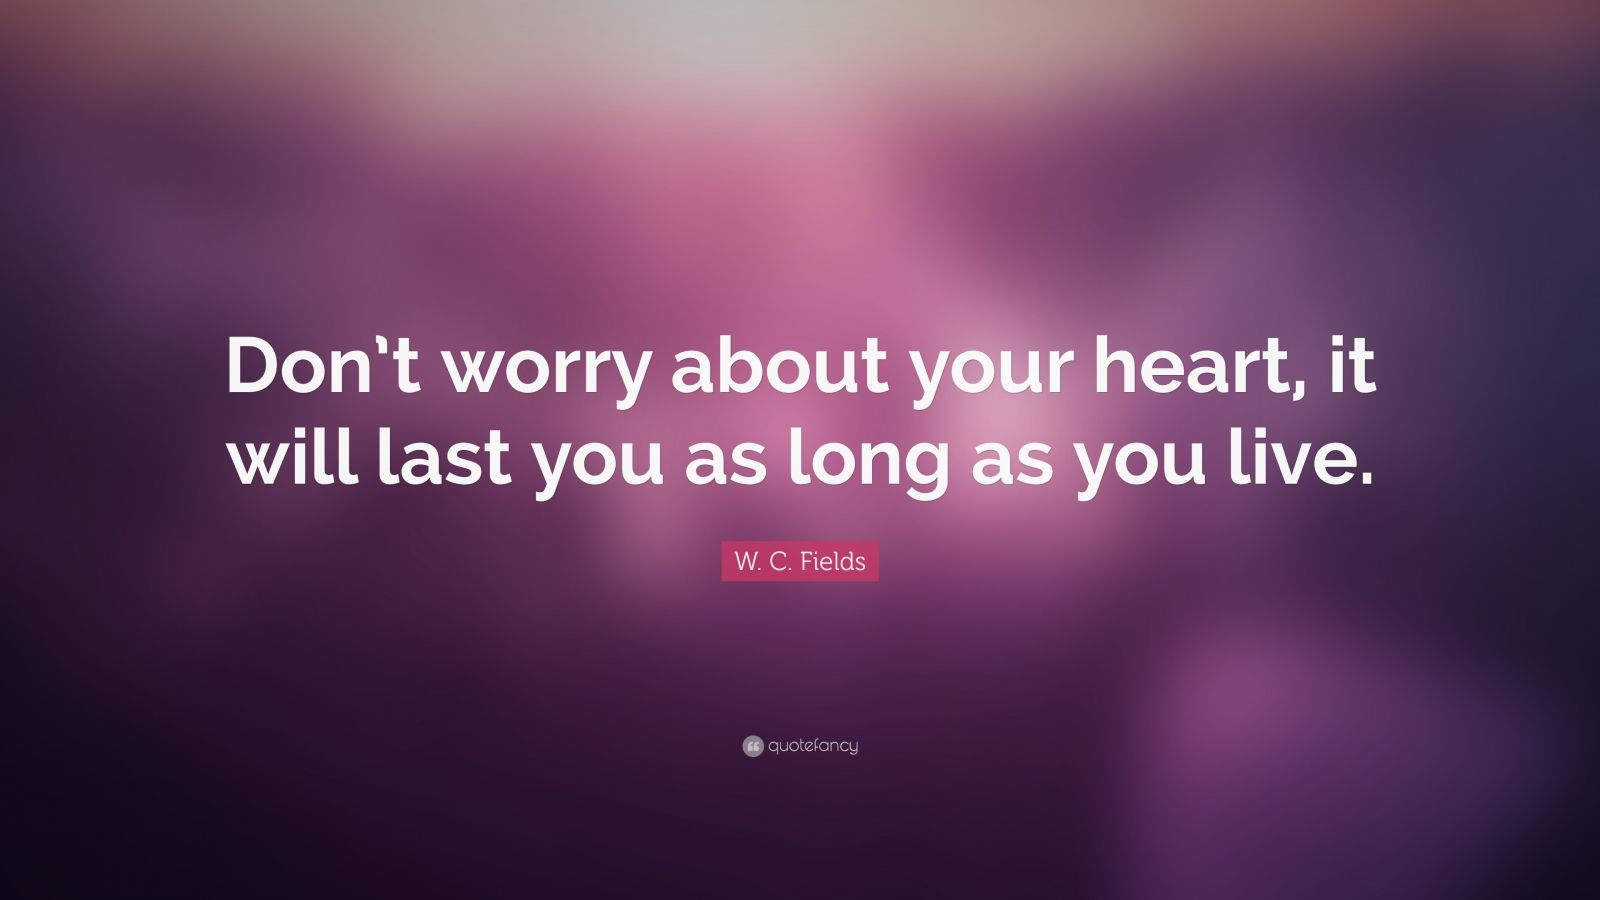 """W. C. Fields Quote: """"Don't worry about your heart, it will last you as long as you live."""""""